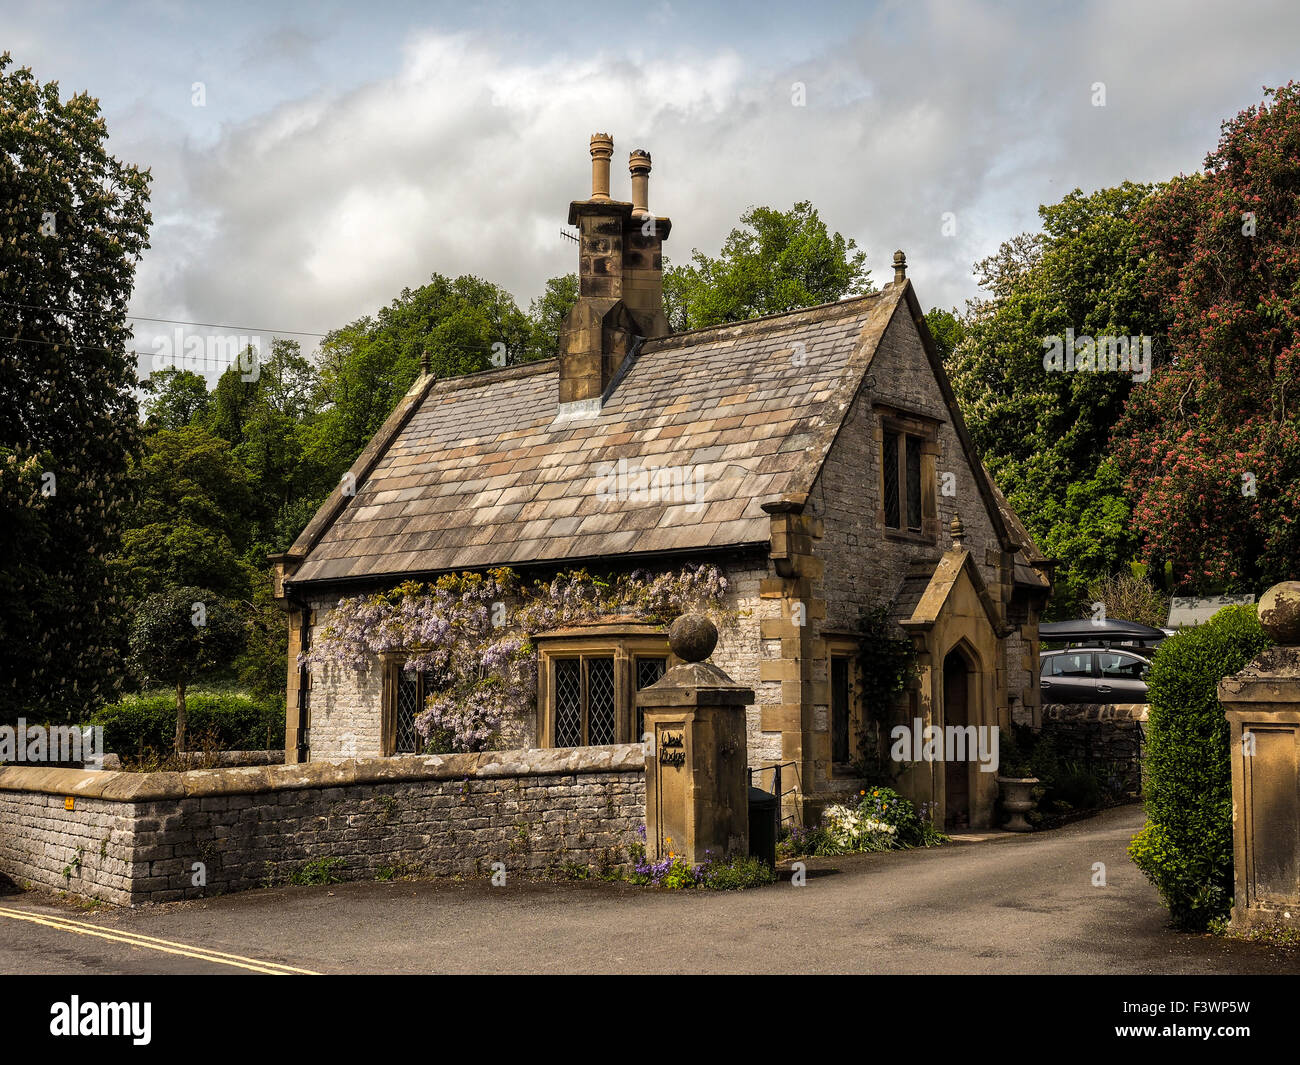 Small stone cottage in derbyshire england stock photo for Small stone cottage